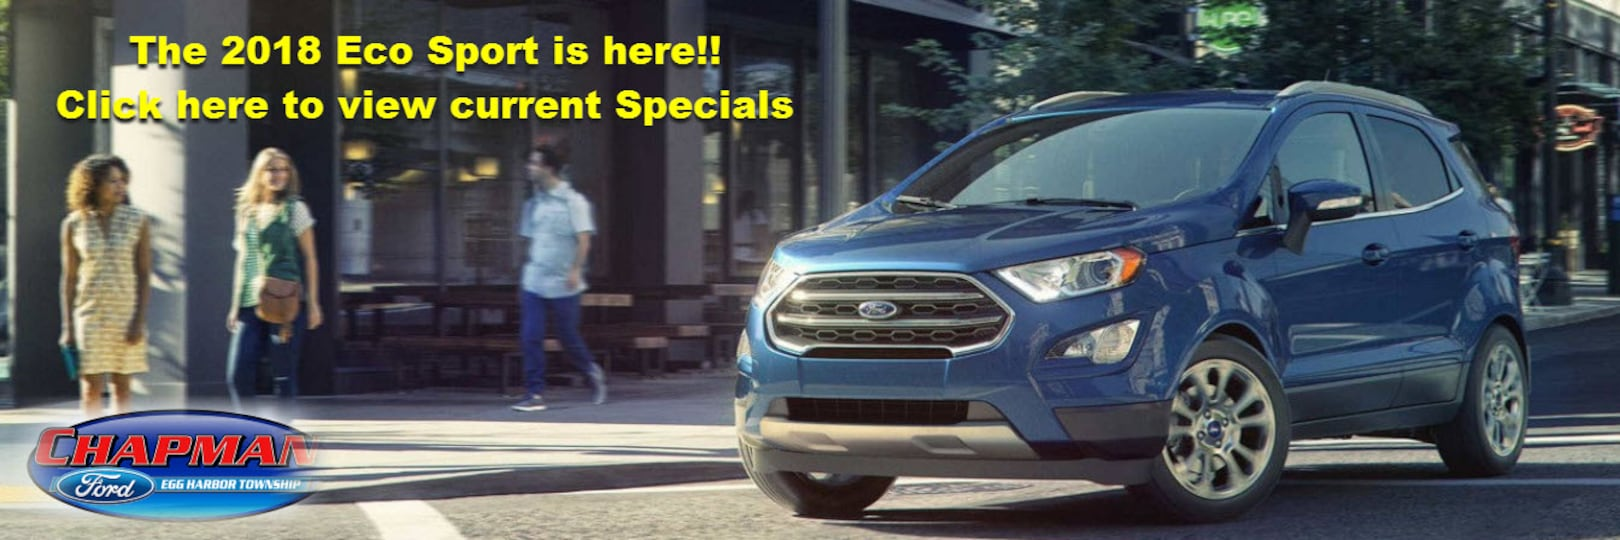 Chapman EHT NJ Ford Dealership In Egg Harbor Township NJ - Ford dealers in nj